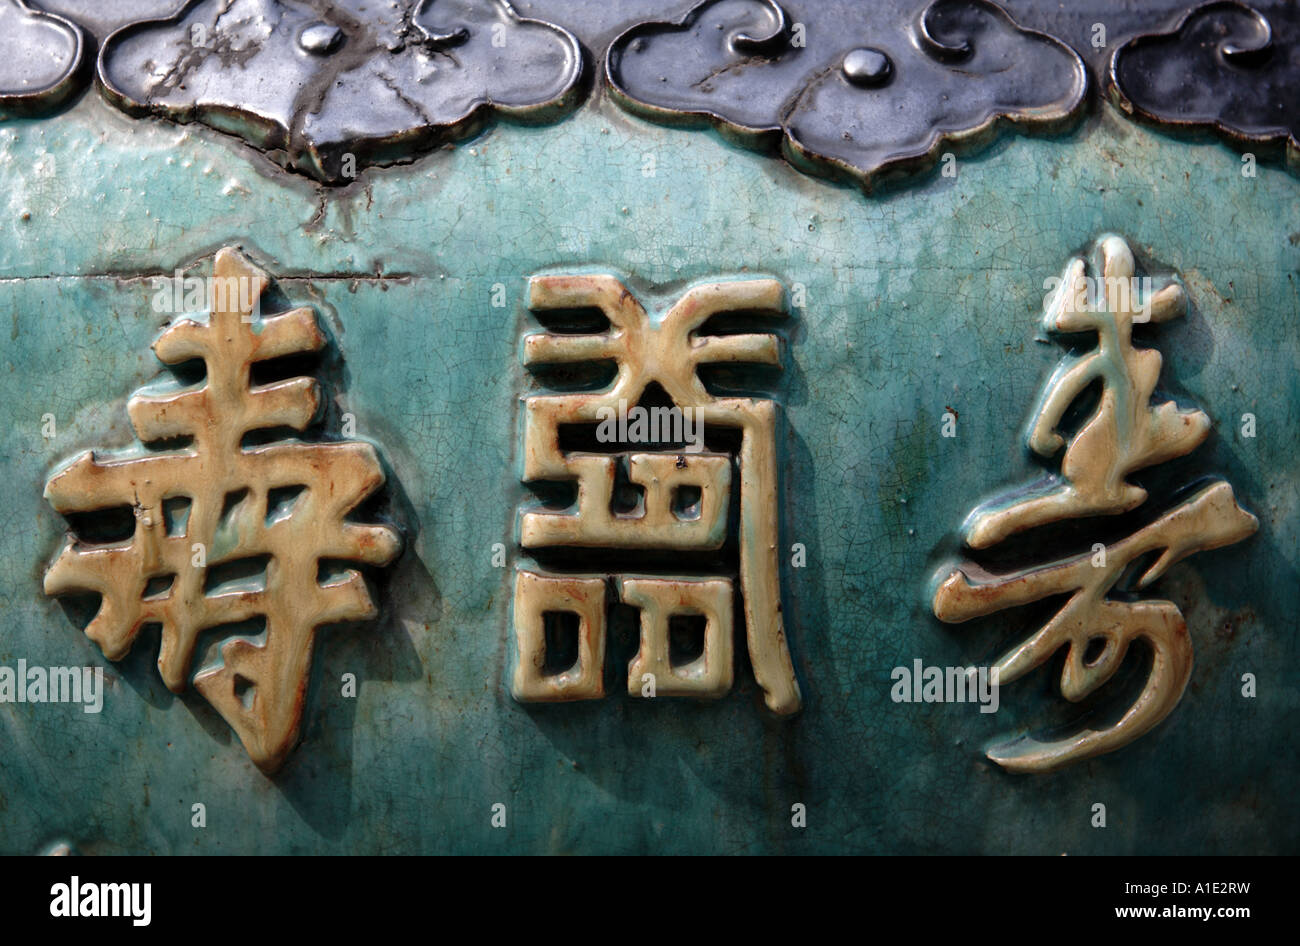 Pottery Chinese Characters Stock Photos Pottery Chinese Characters